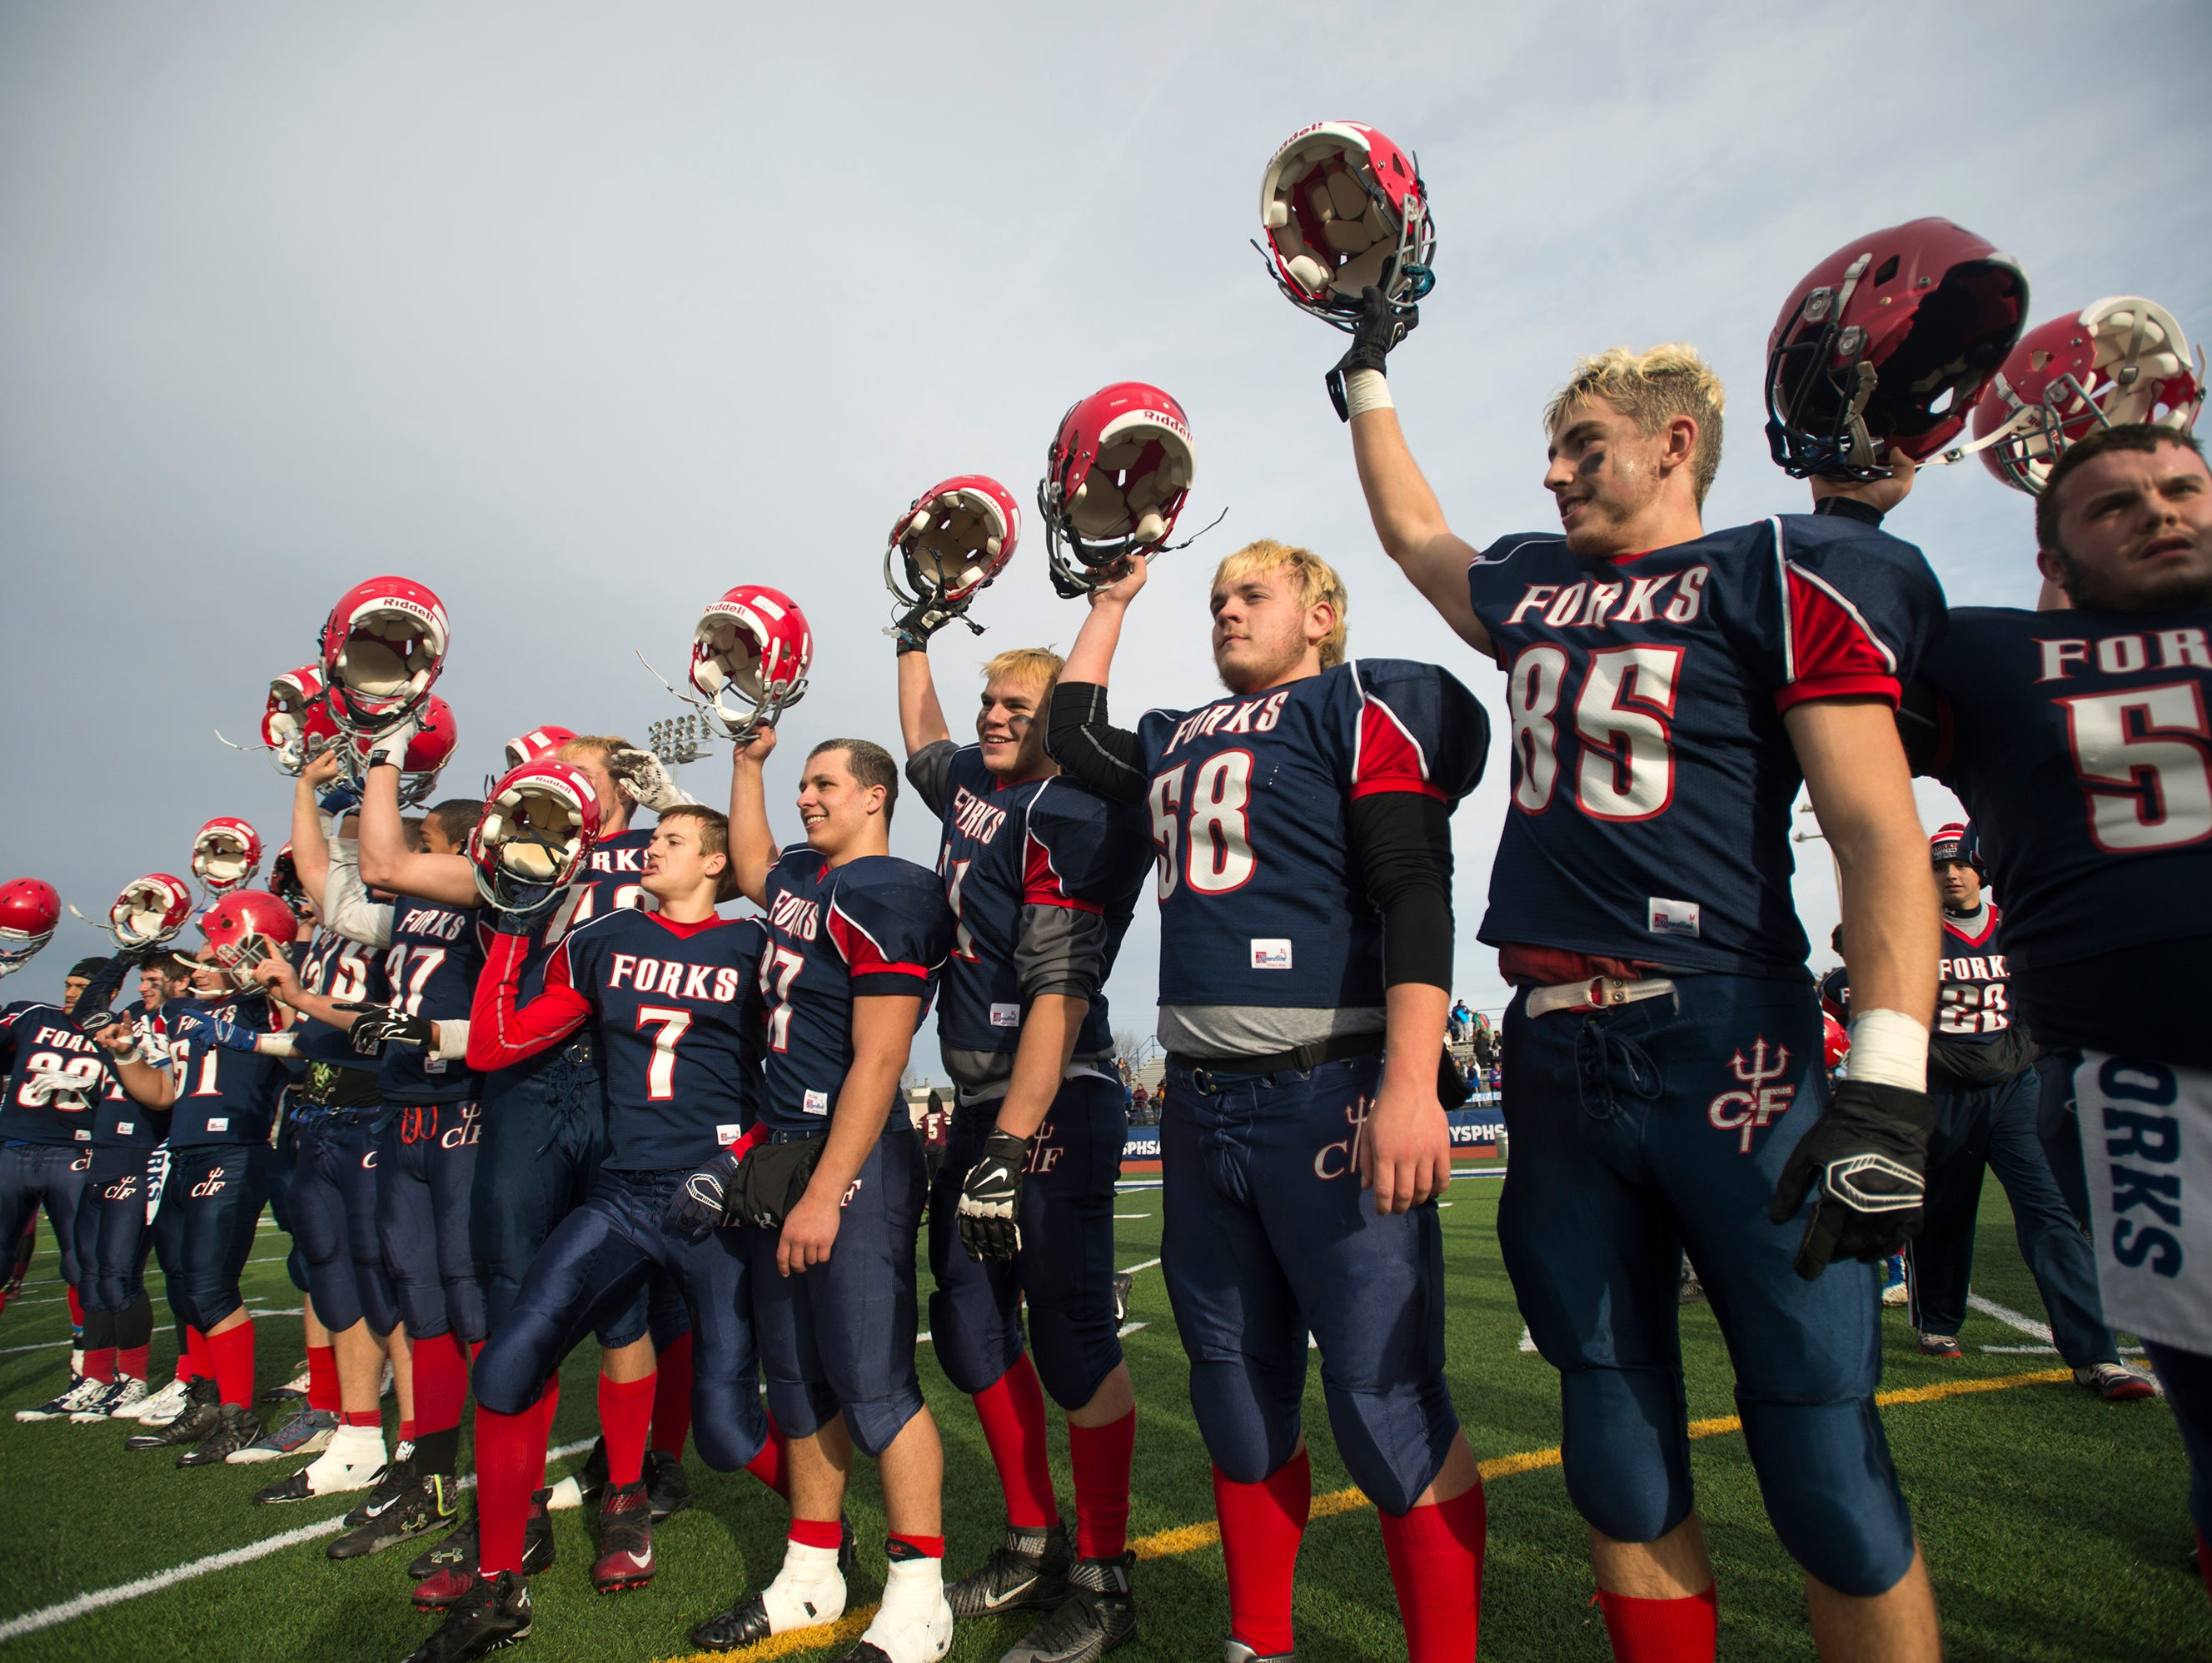 Chenango Forks players celebrate after beating Bath 44-22 to advance to the Class C state playoff finals.